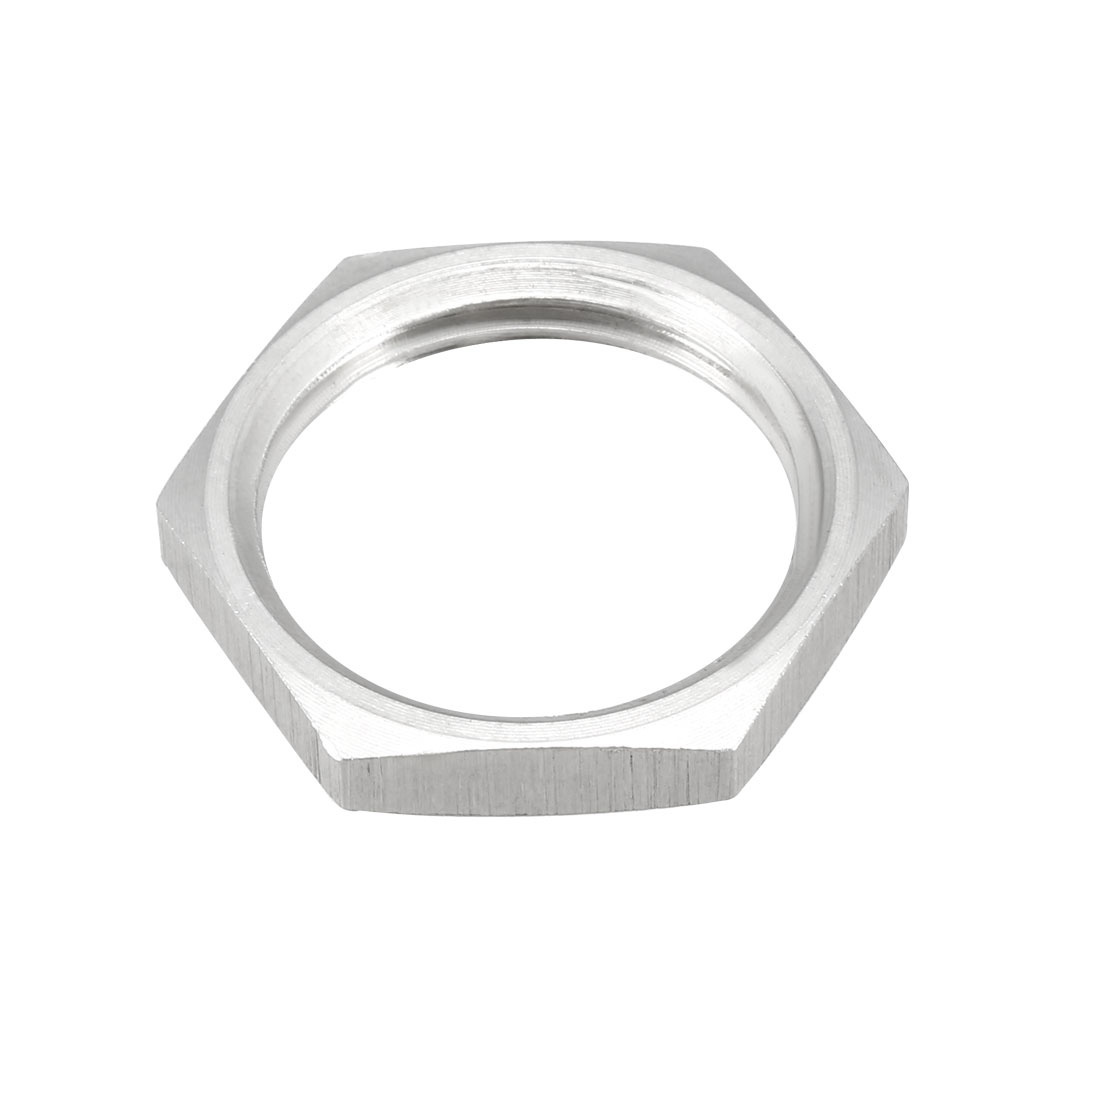 Pipe Fitting Hex Locknut SUS304 Stainless Steel G1/2 Inch Female Threaded